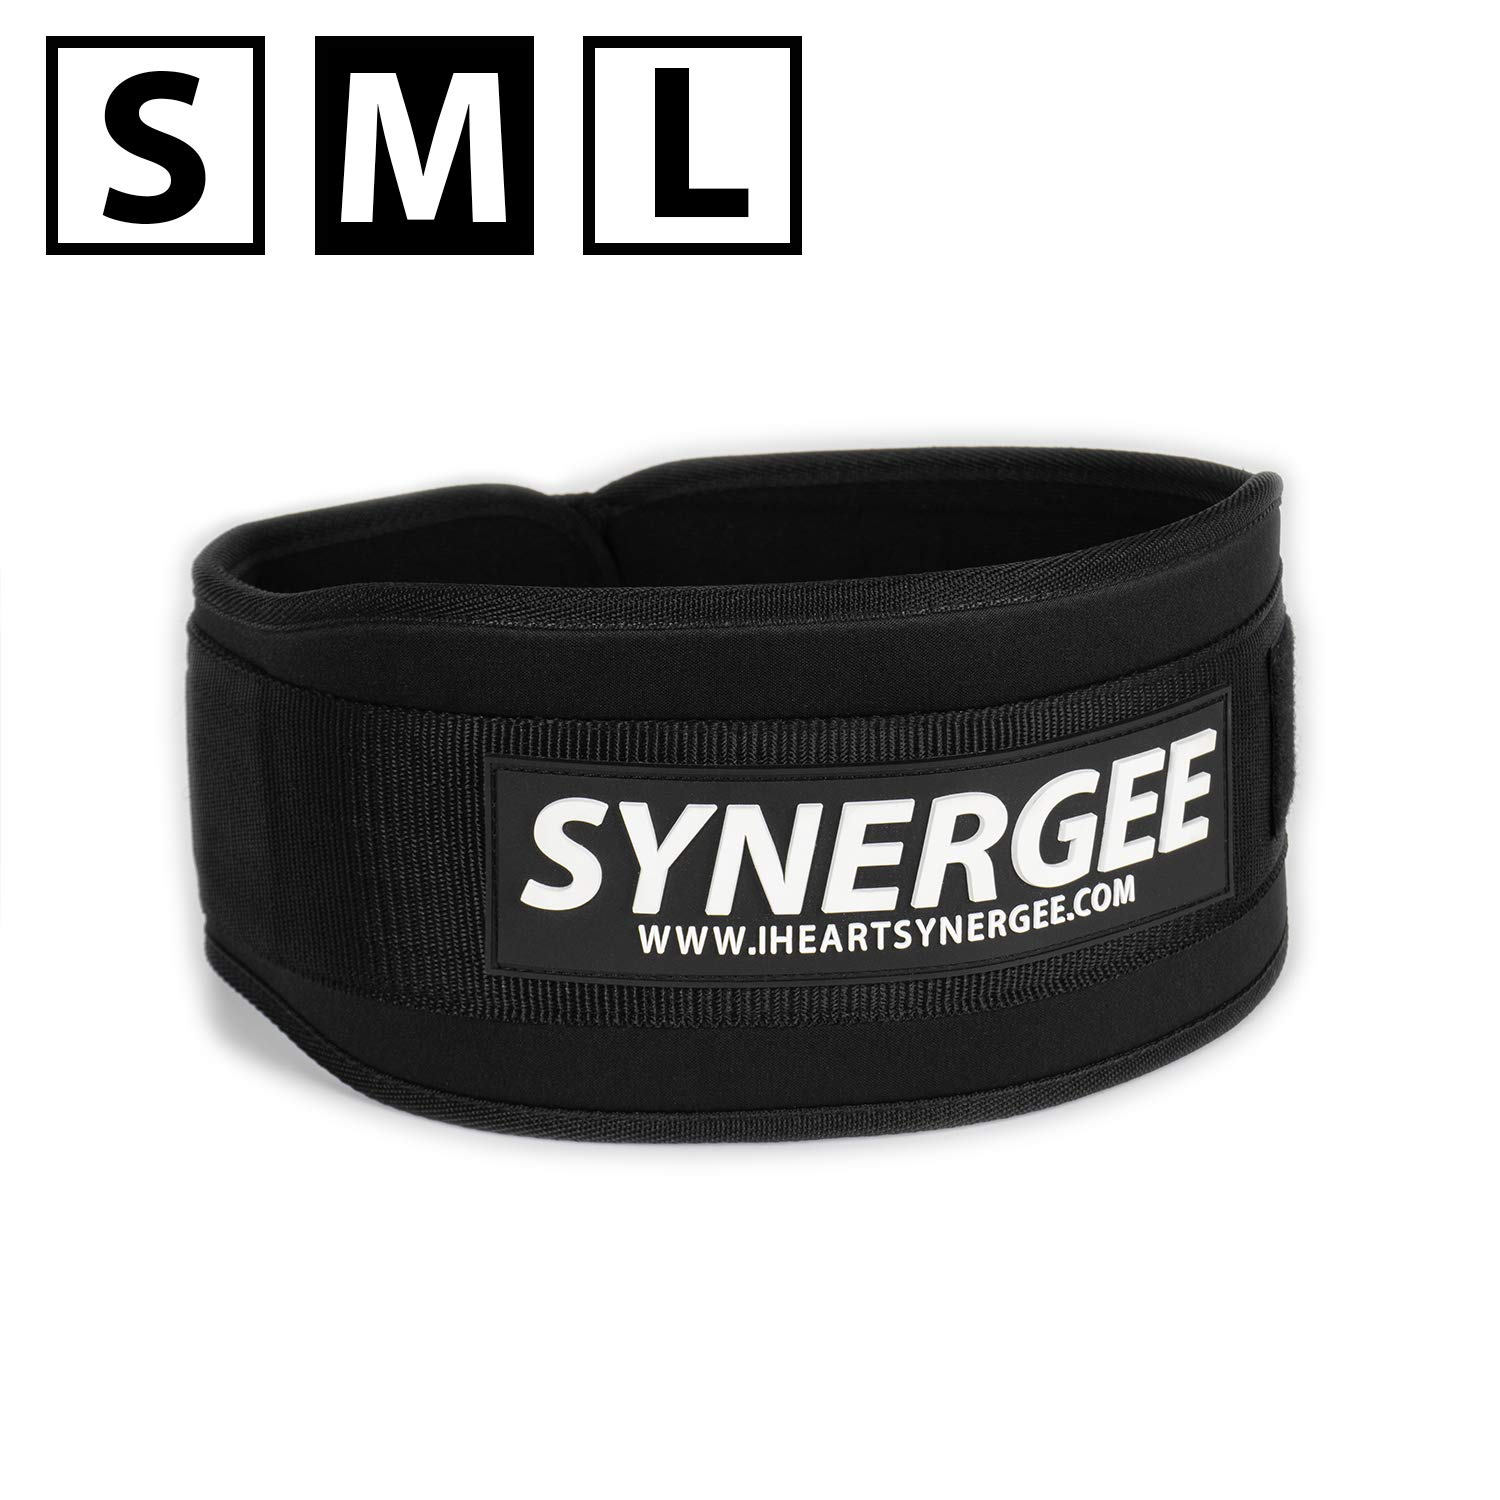 Synergee Weightlifting Belt, Olympic Lifting, Dynamic Workouts, Weight Belt for Men and Women, 5 inch, Back Support for Lifting - Medium